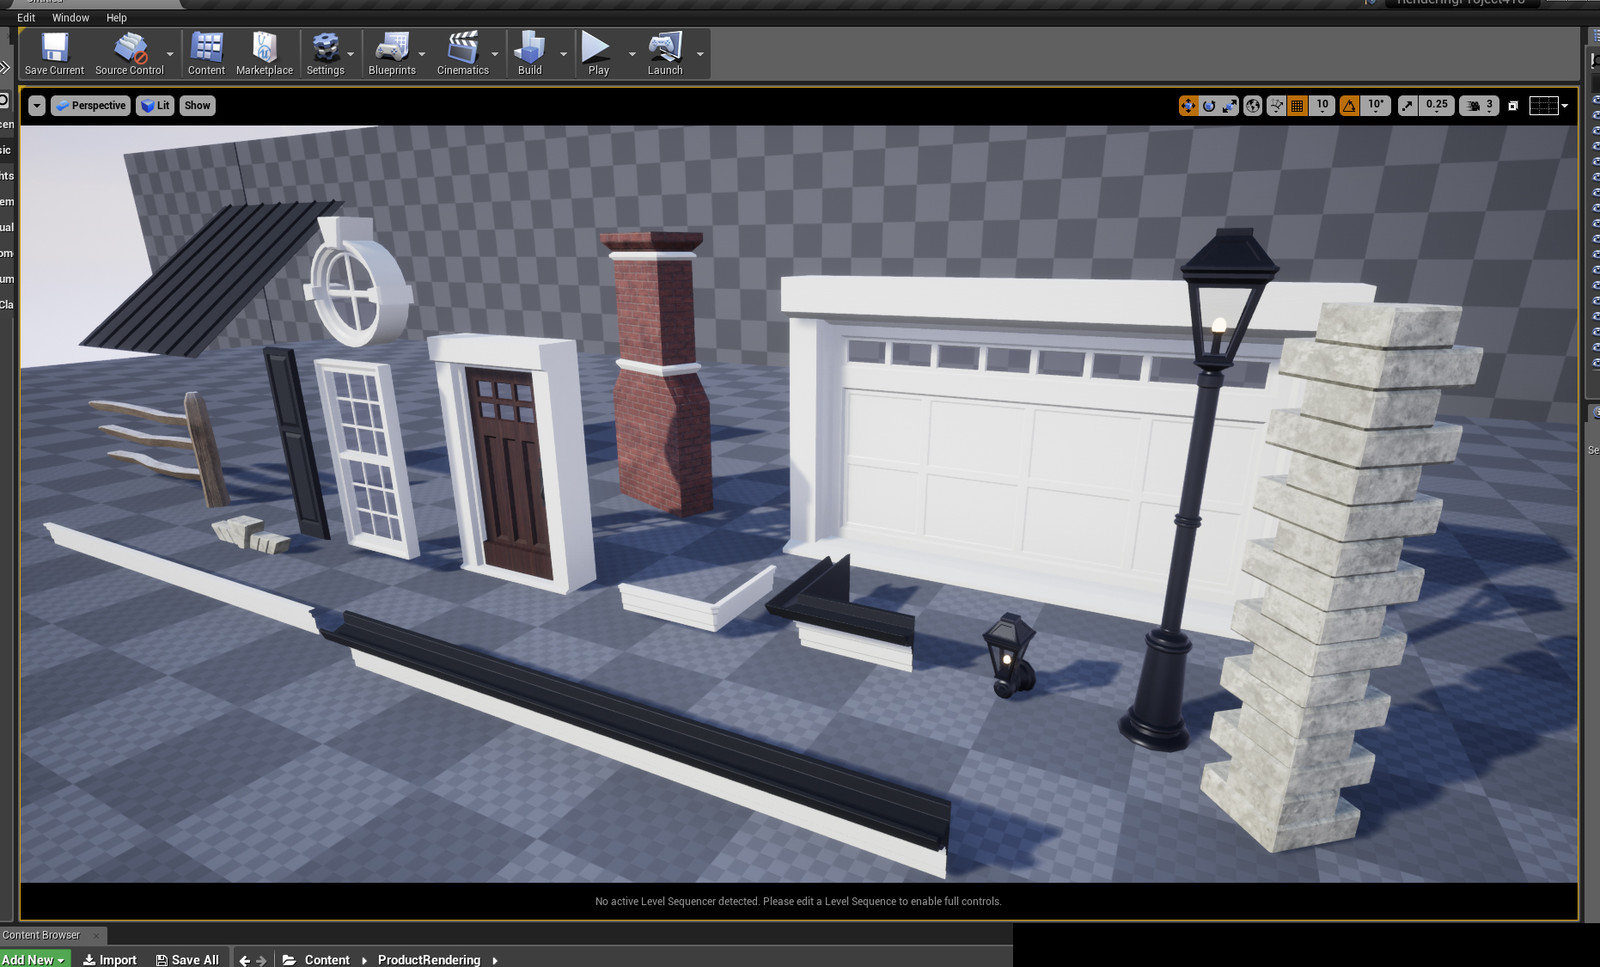 Modular custom assets for building the house